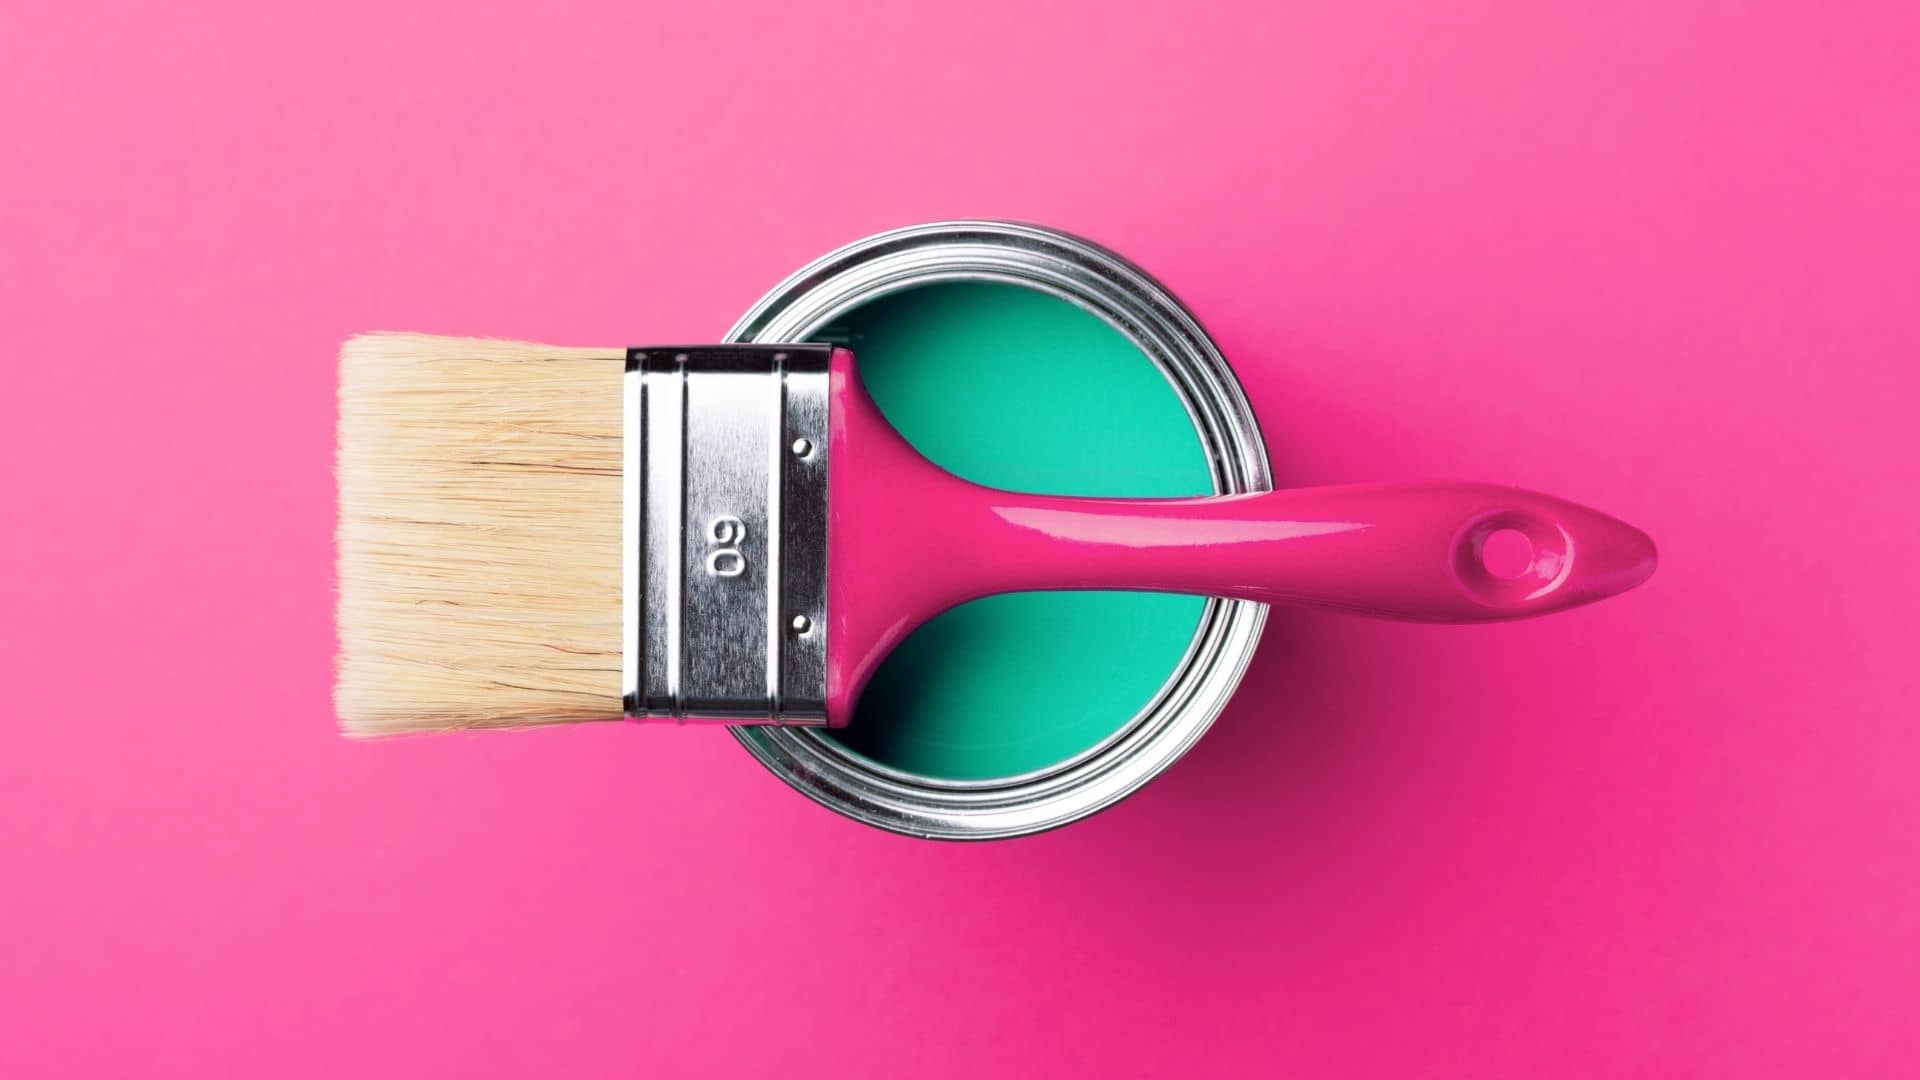 How To Make Hot Pink Paint